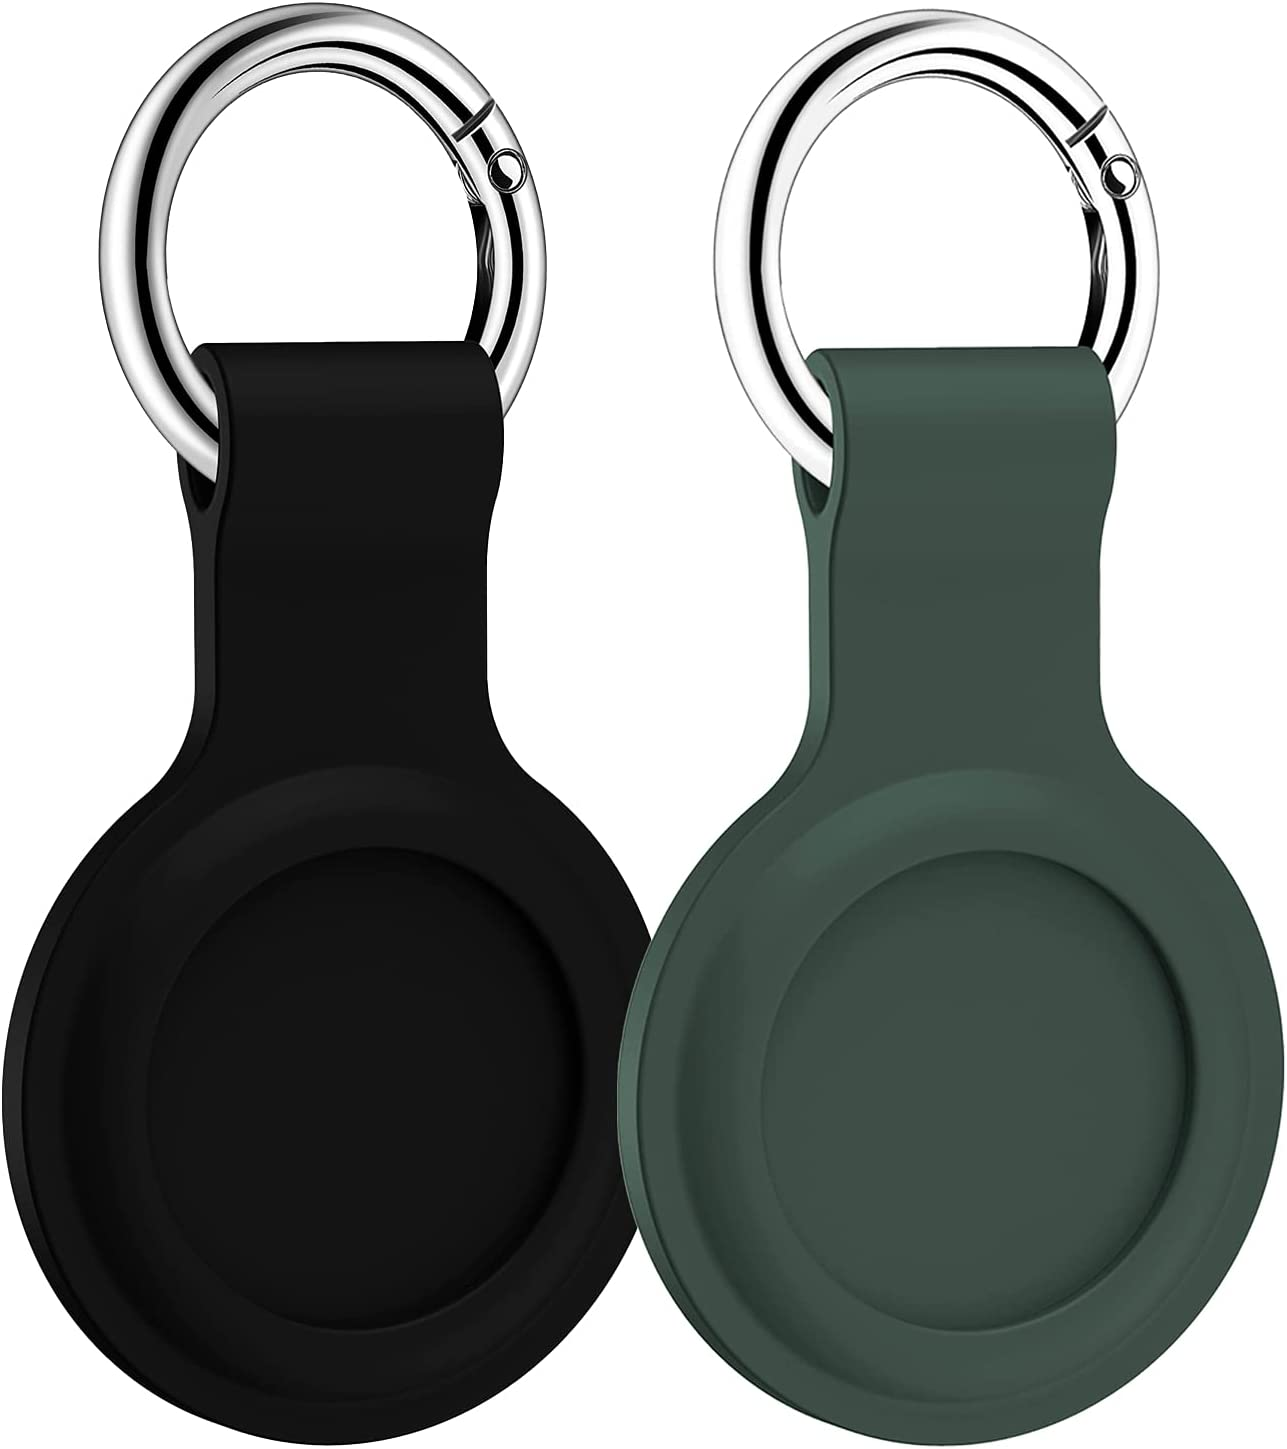 LowGeeker Case for AirTag, 2 Pack Silicone Protective Cover for Apple AirTag Keychain Holder Accessories Tracker Finder Soft, Black/Green